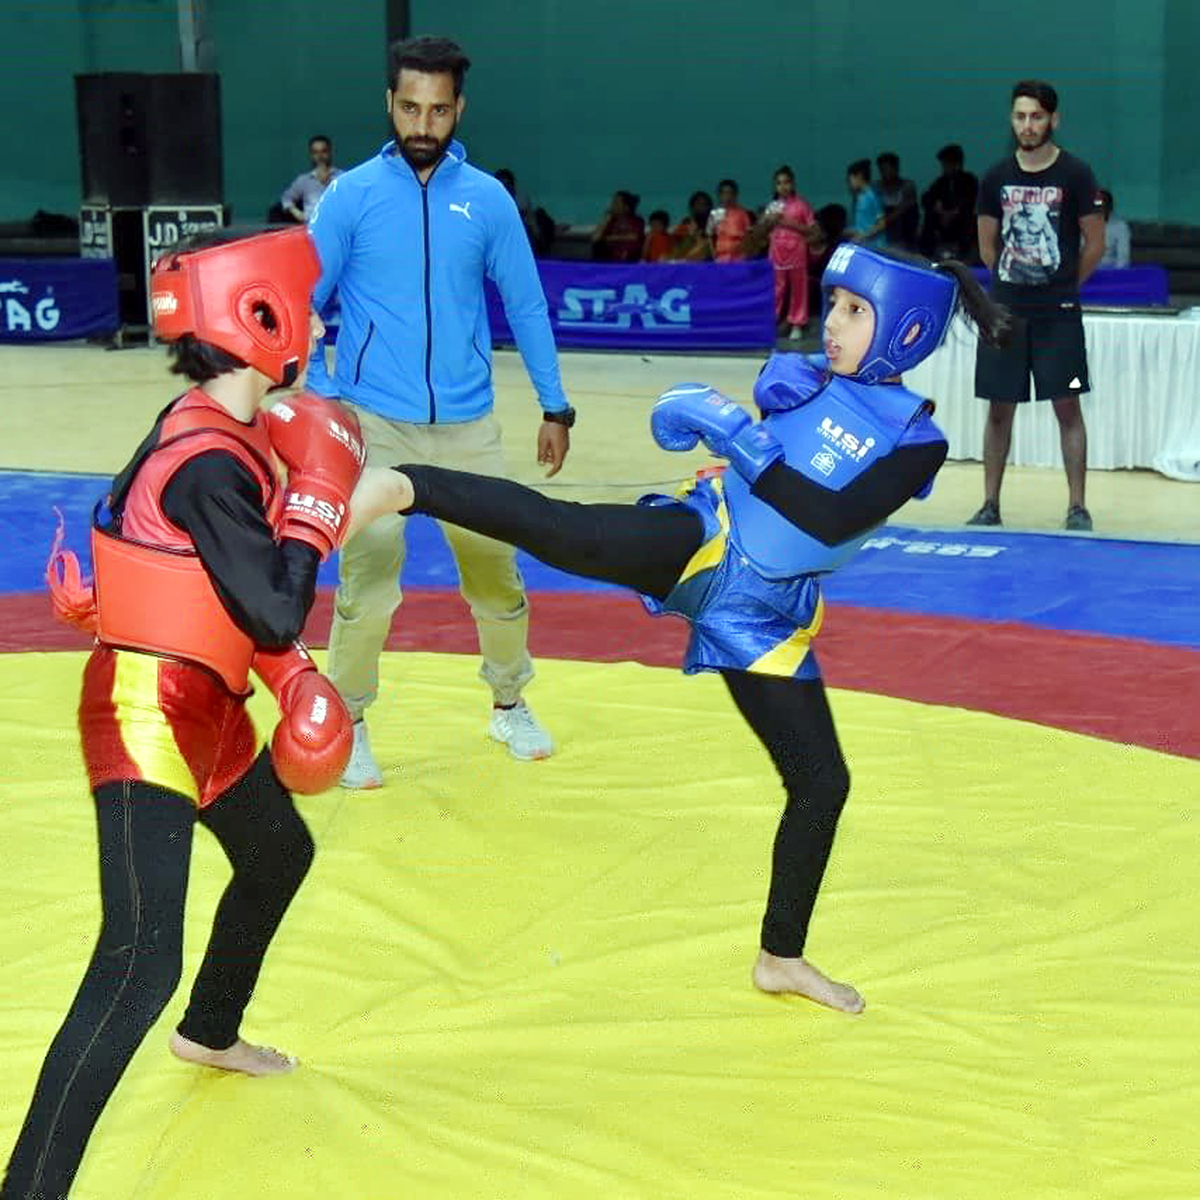 Wushu players in action.